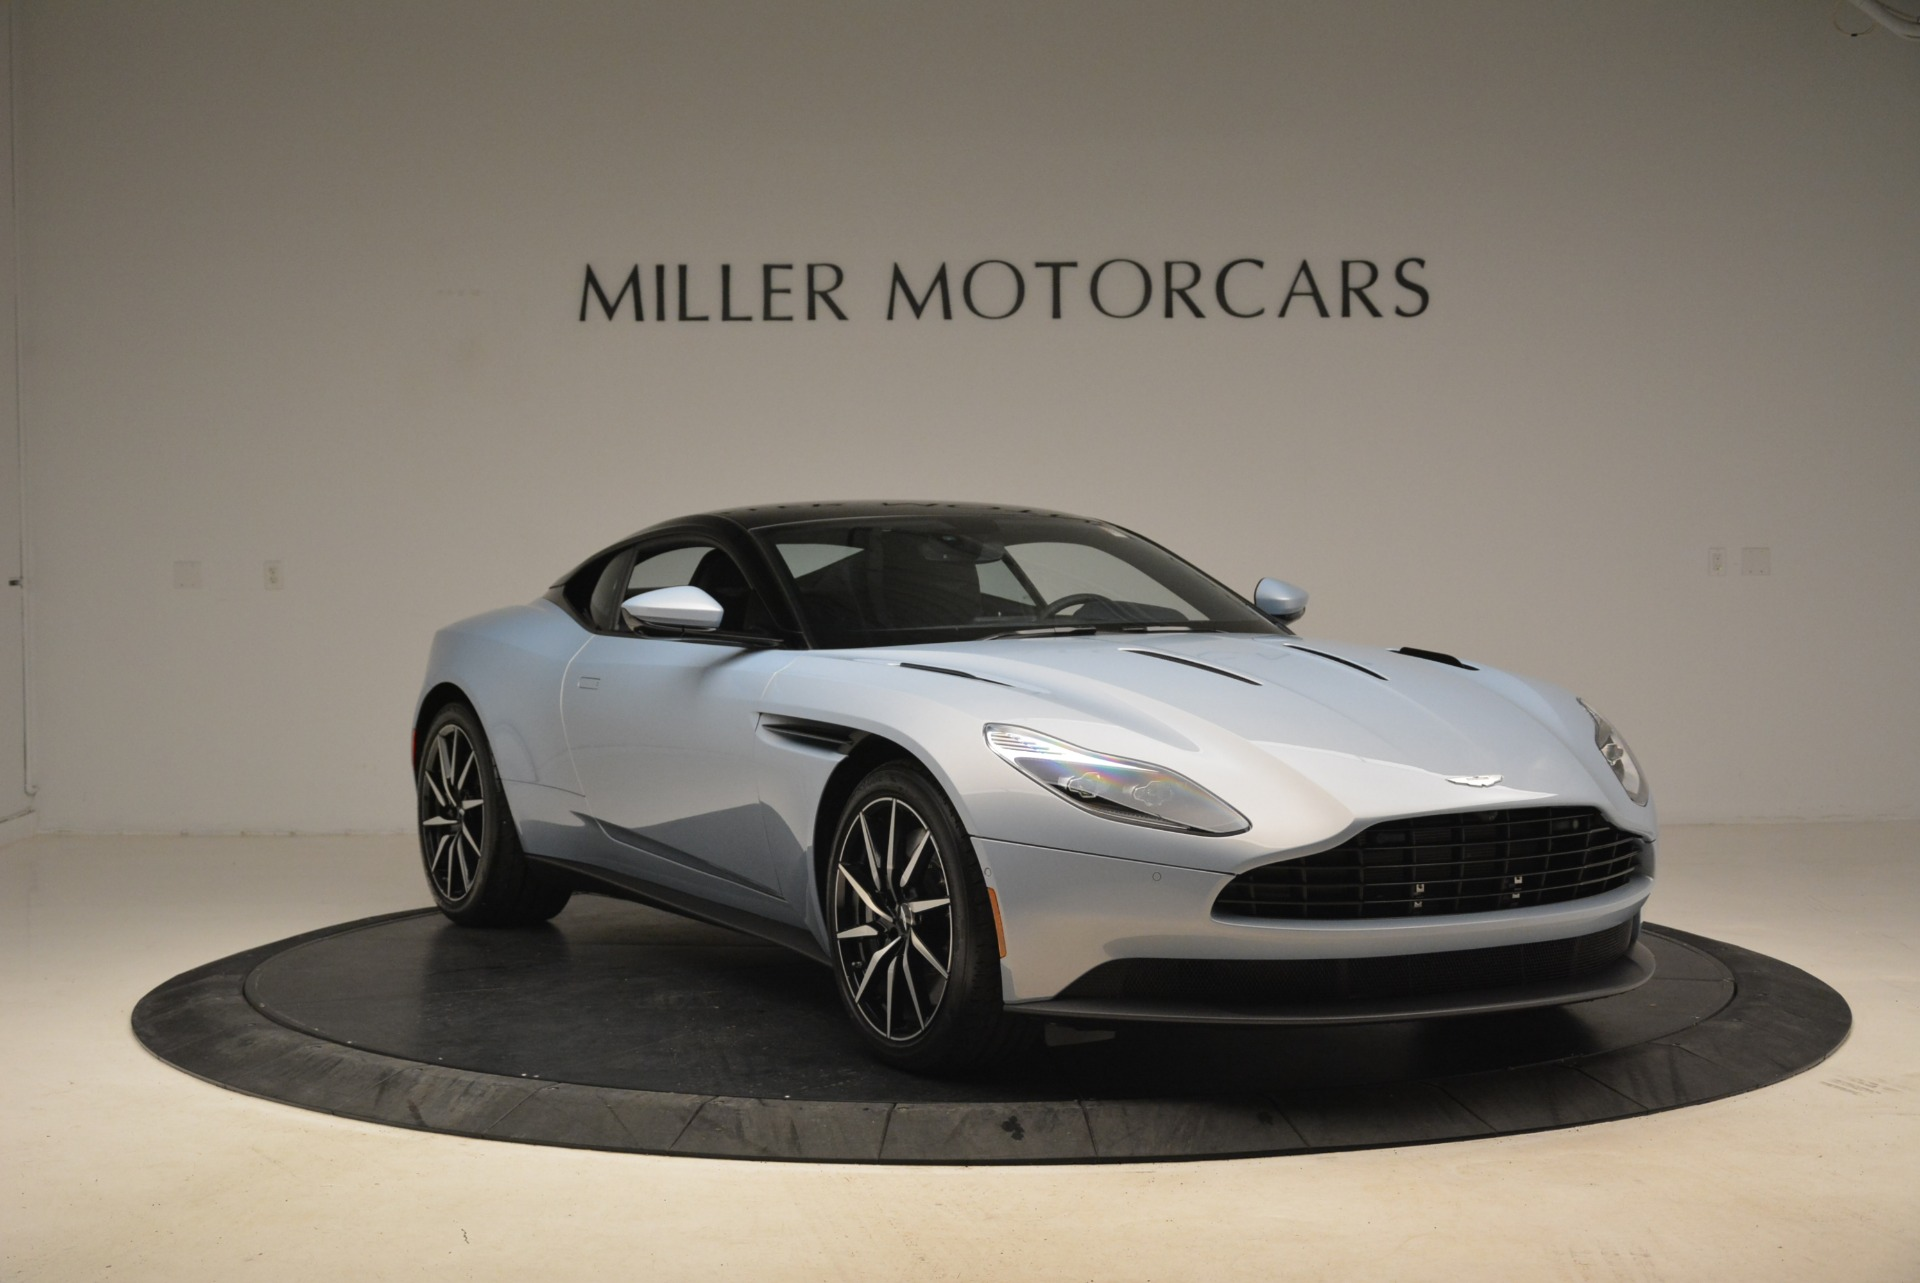 New 2018 Aston Martin DB11 V12 For Sale In Westport, CT 2225_p11